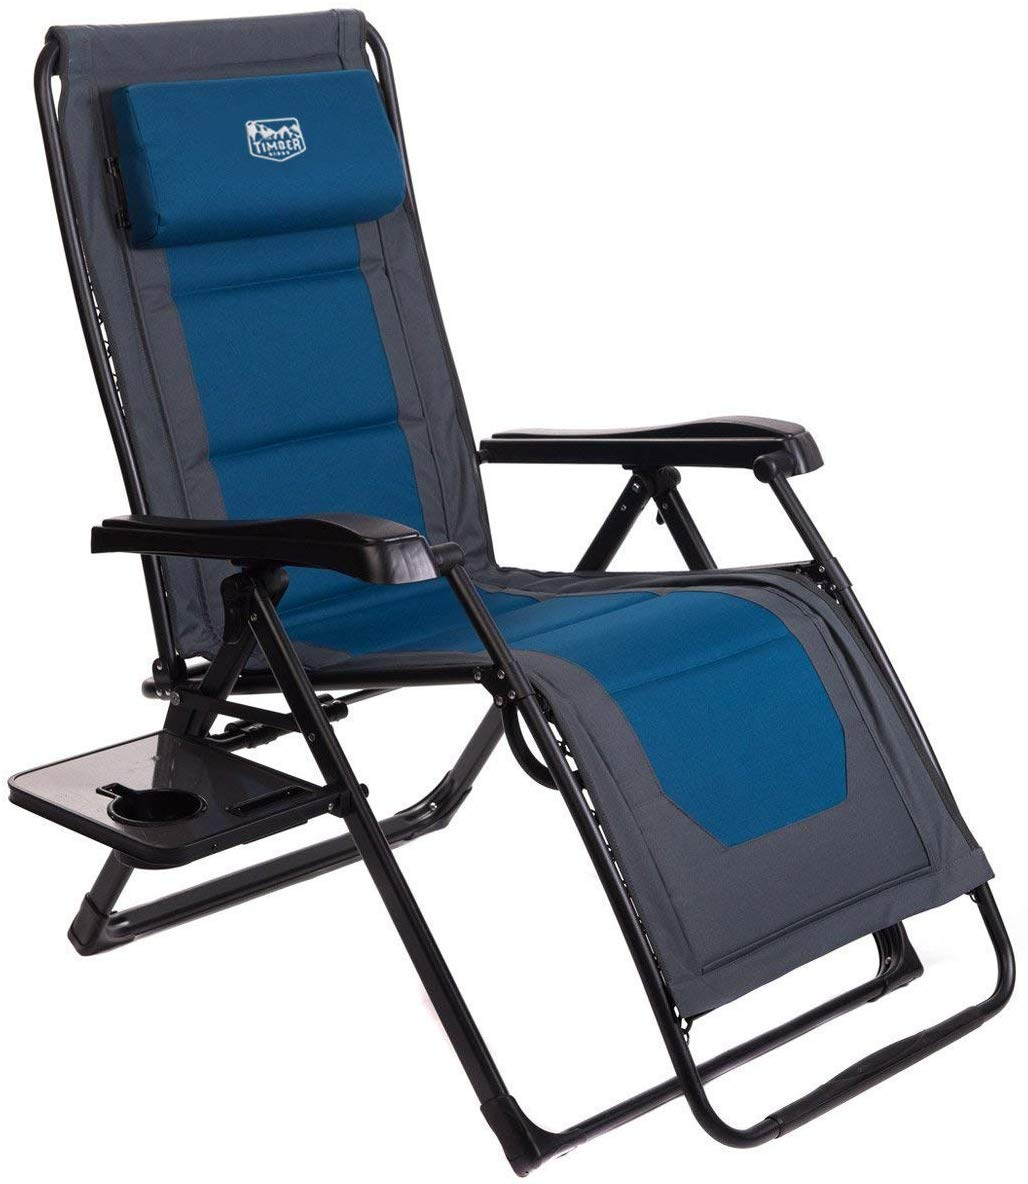 Top 10 Best Reclining Camping Chairs 2021 Reviews 3